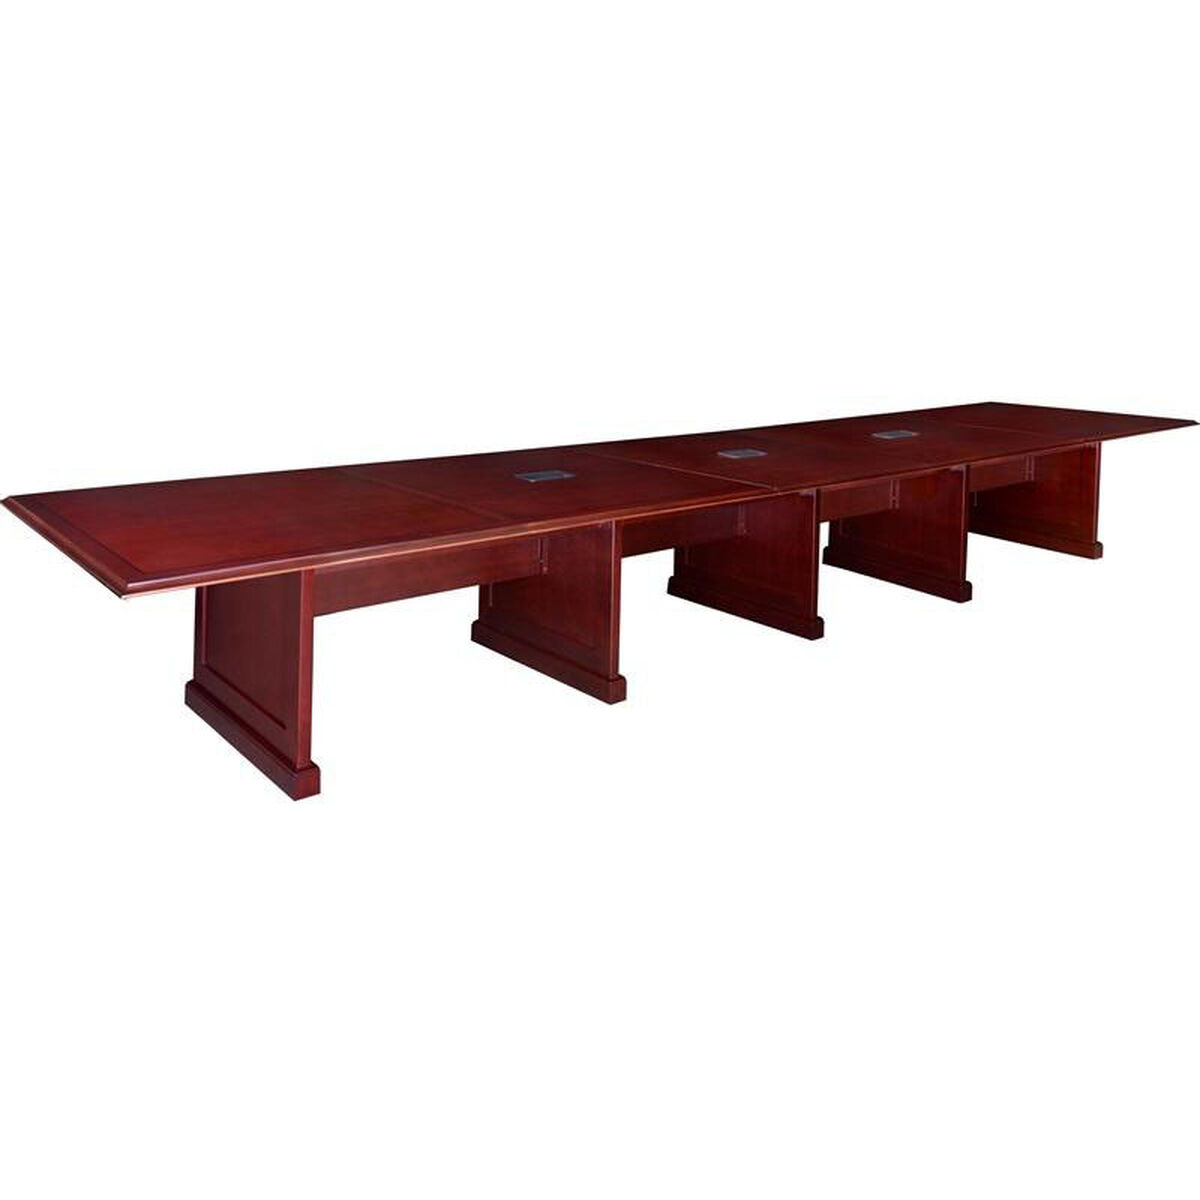 Conference Table With Power TVCTRCMH SchoolFurnitureLesscom - Conference table with power and data